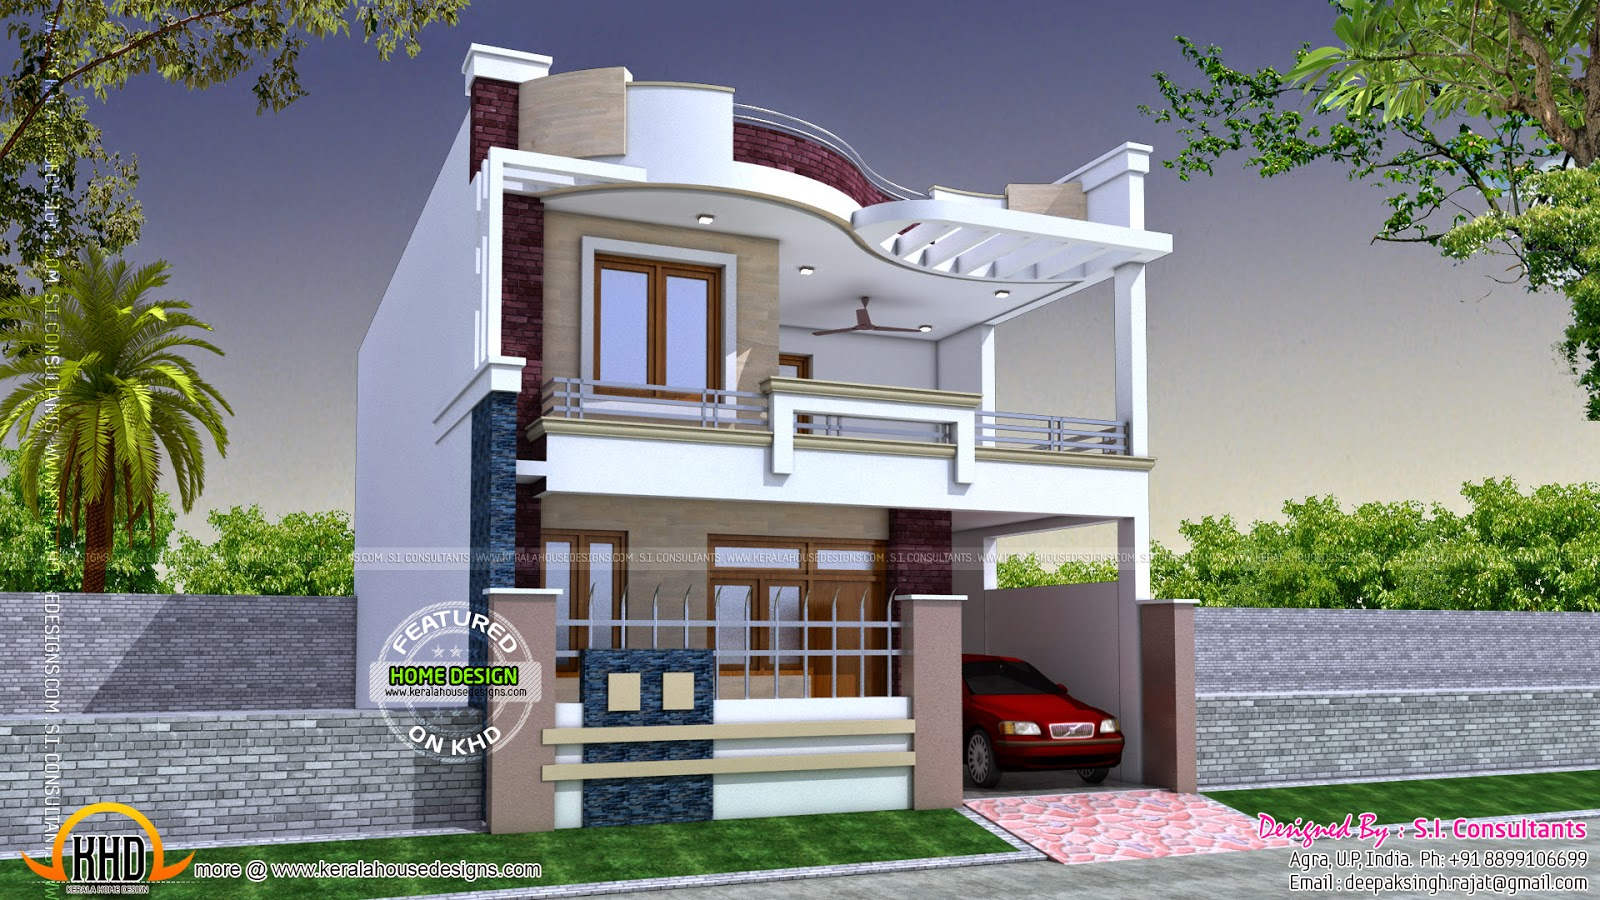 Modern indian home design kerala home design and floor plans for Modern indian house plans